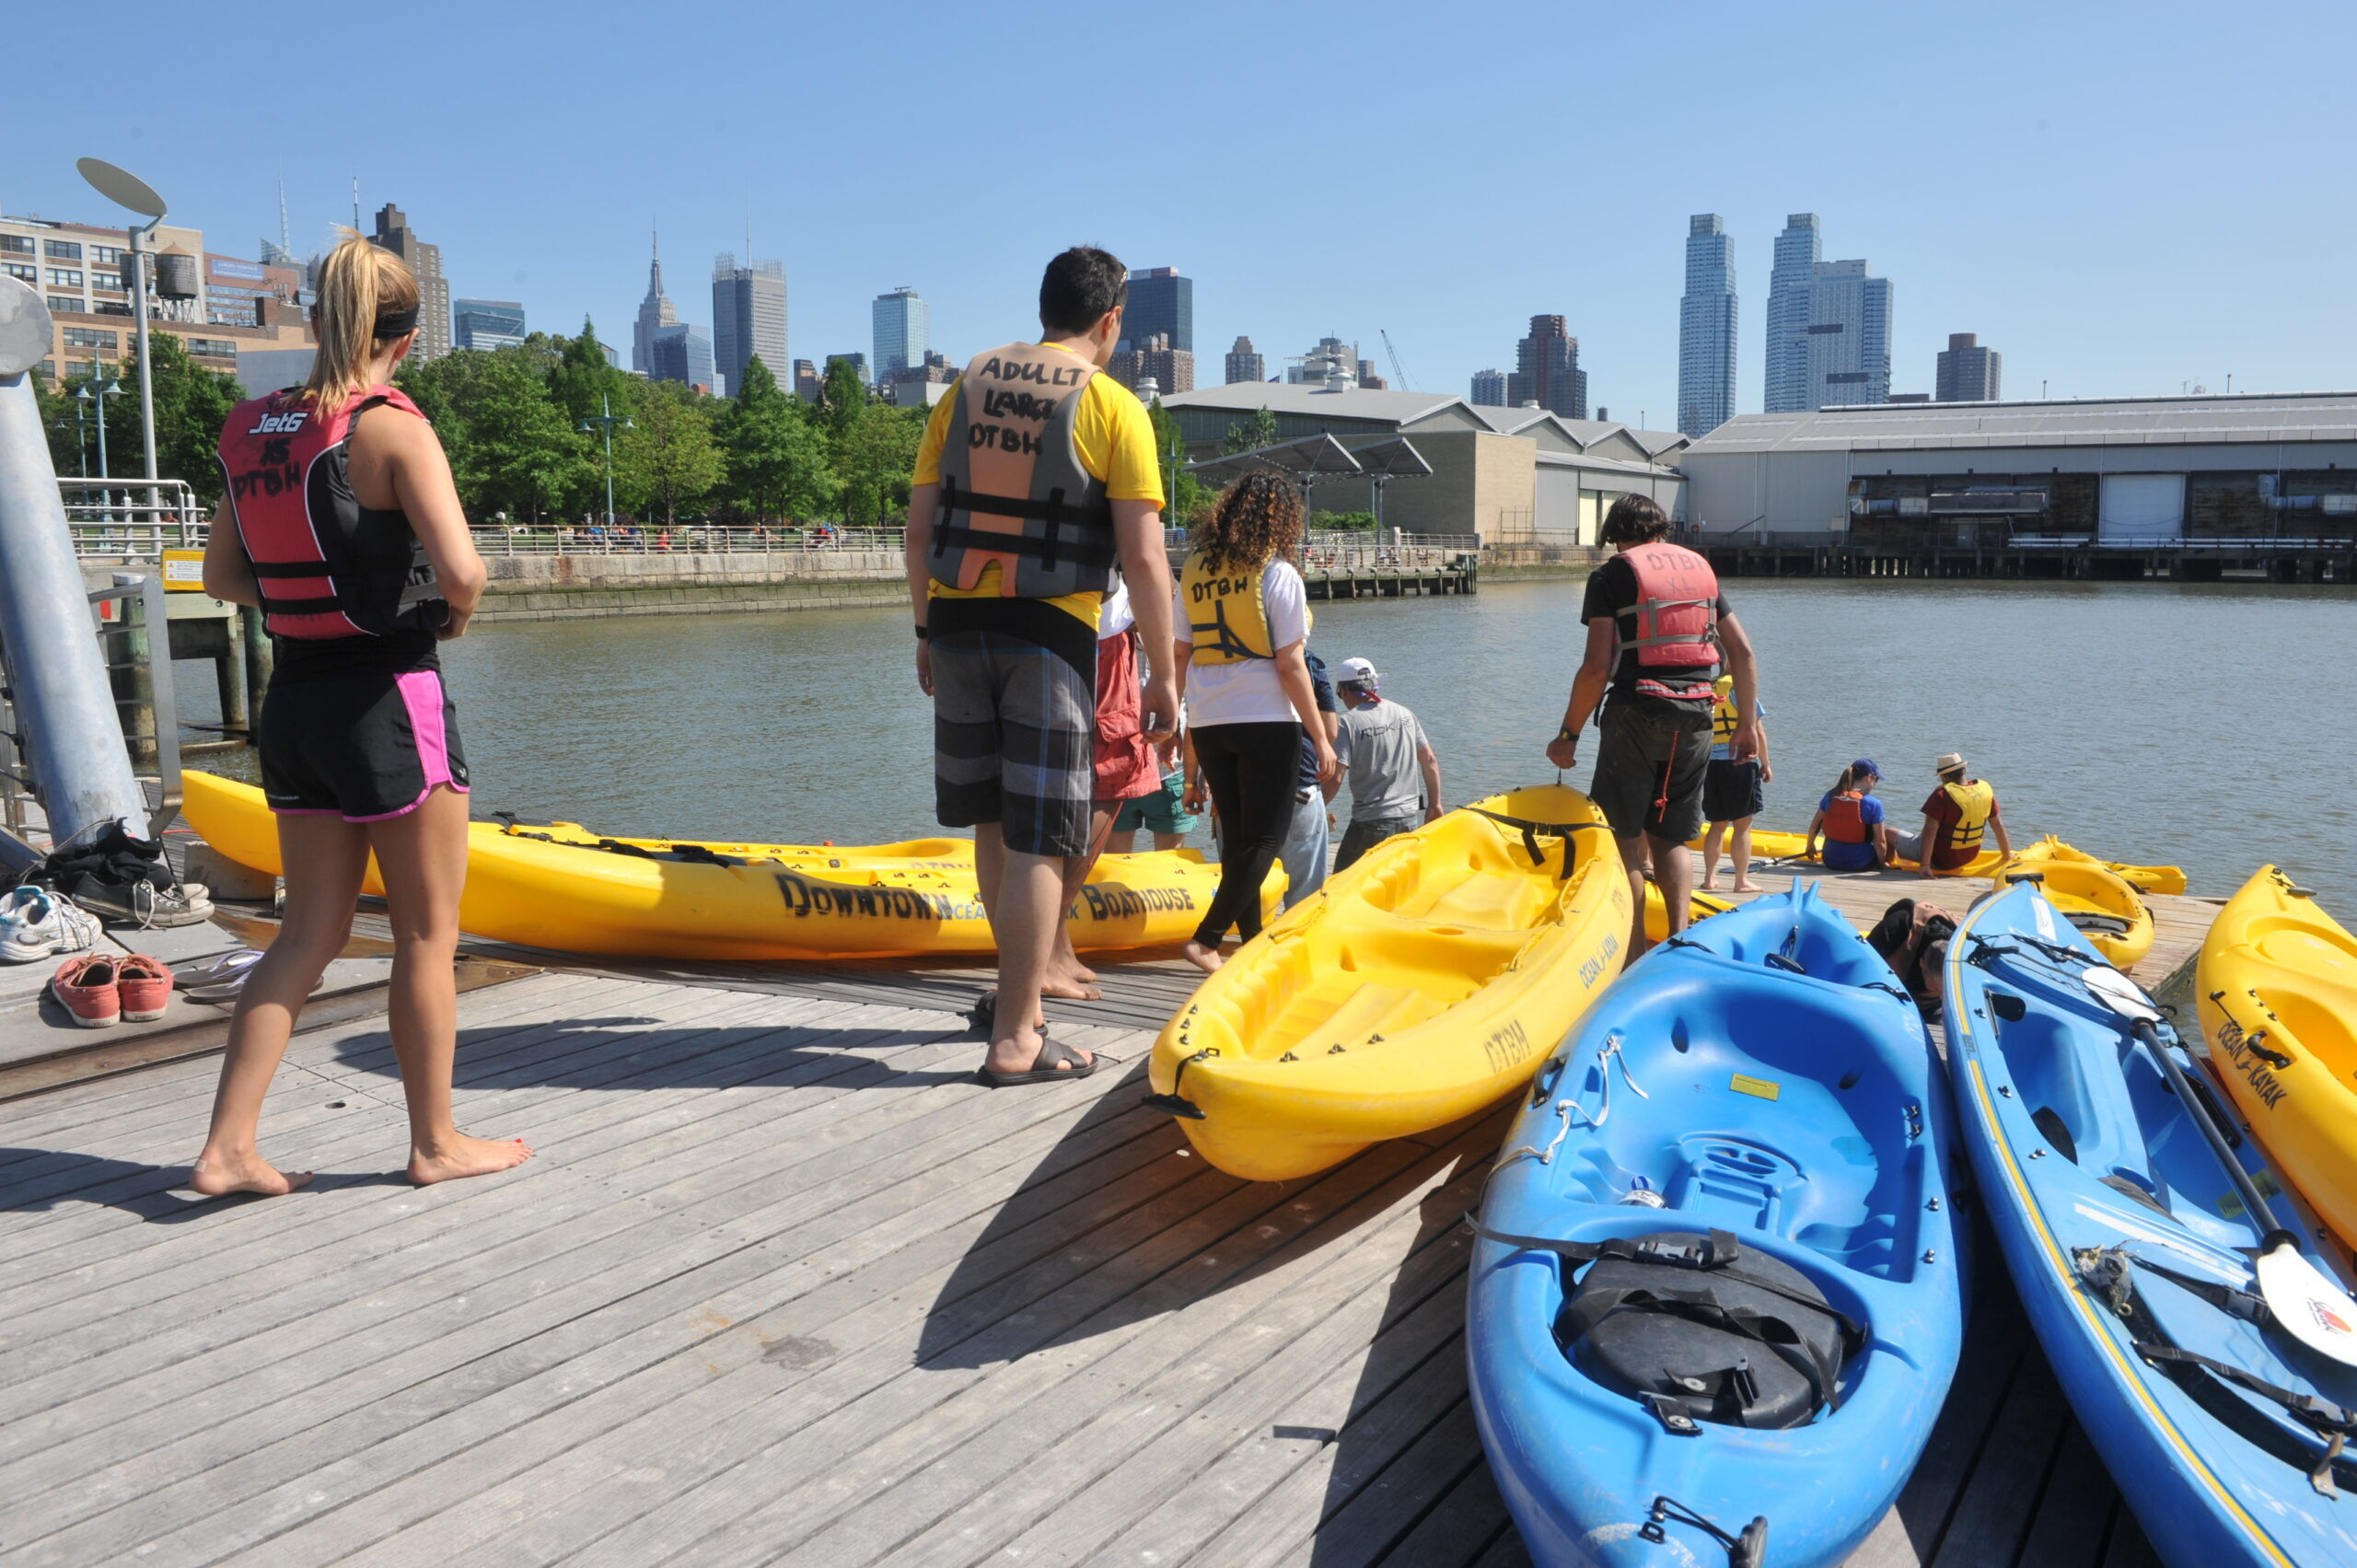 Kayakers prepare to head out on the river